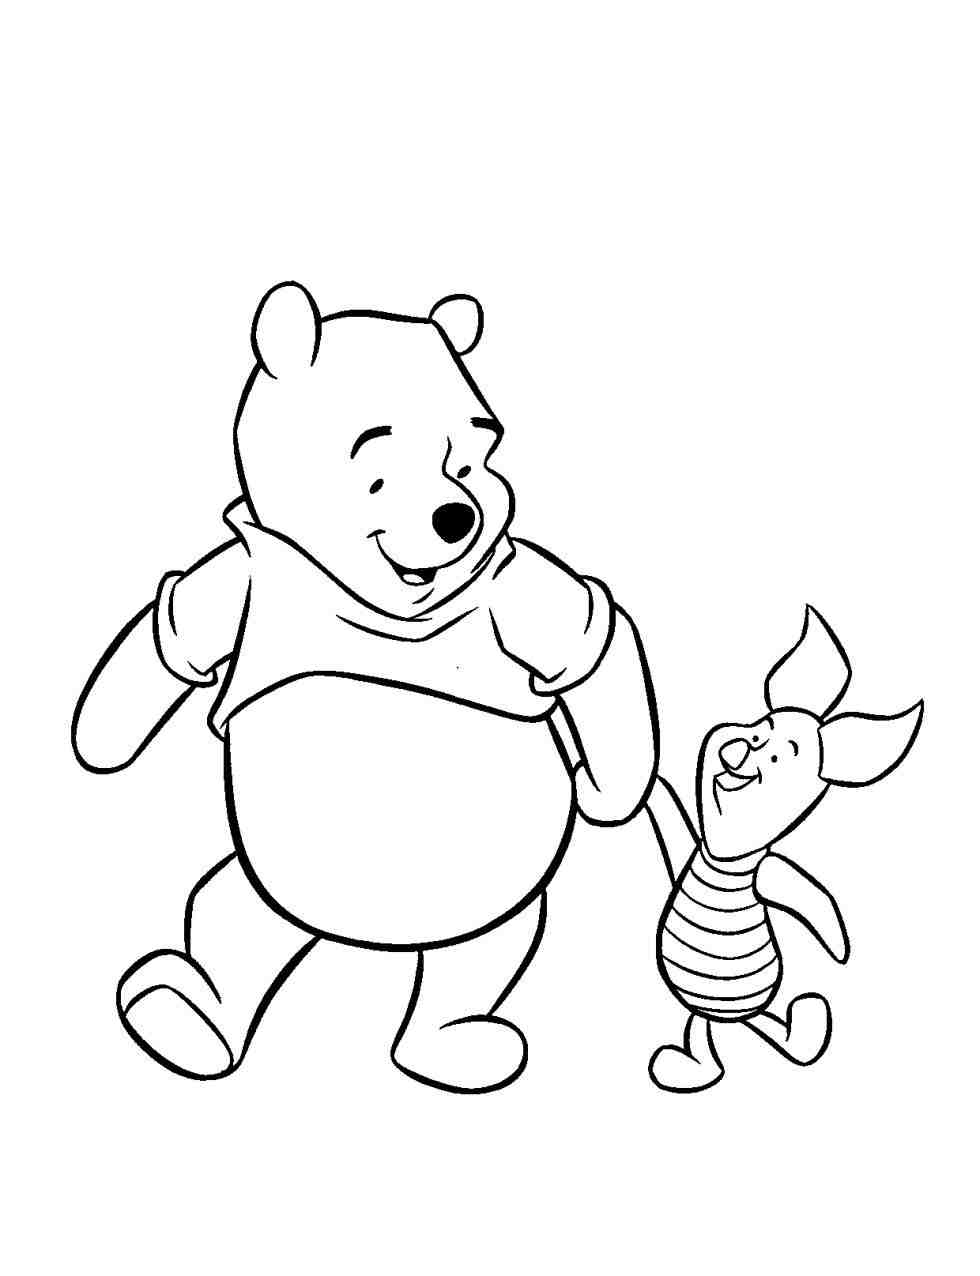 980x1276 Of Winnie The Pooh To Draw Chibi Eeyore Step By Disney Characters